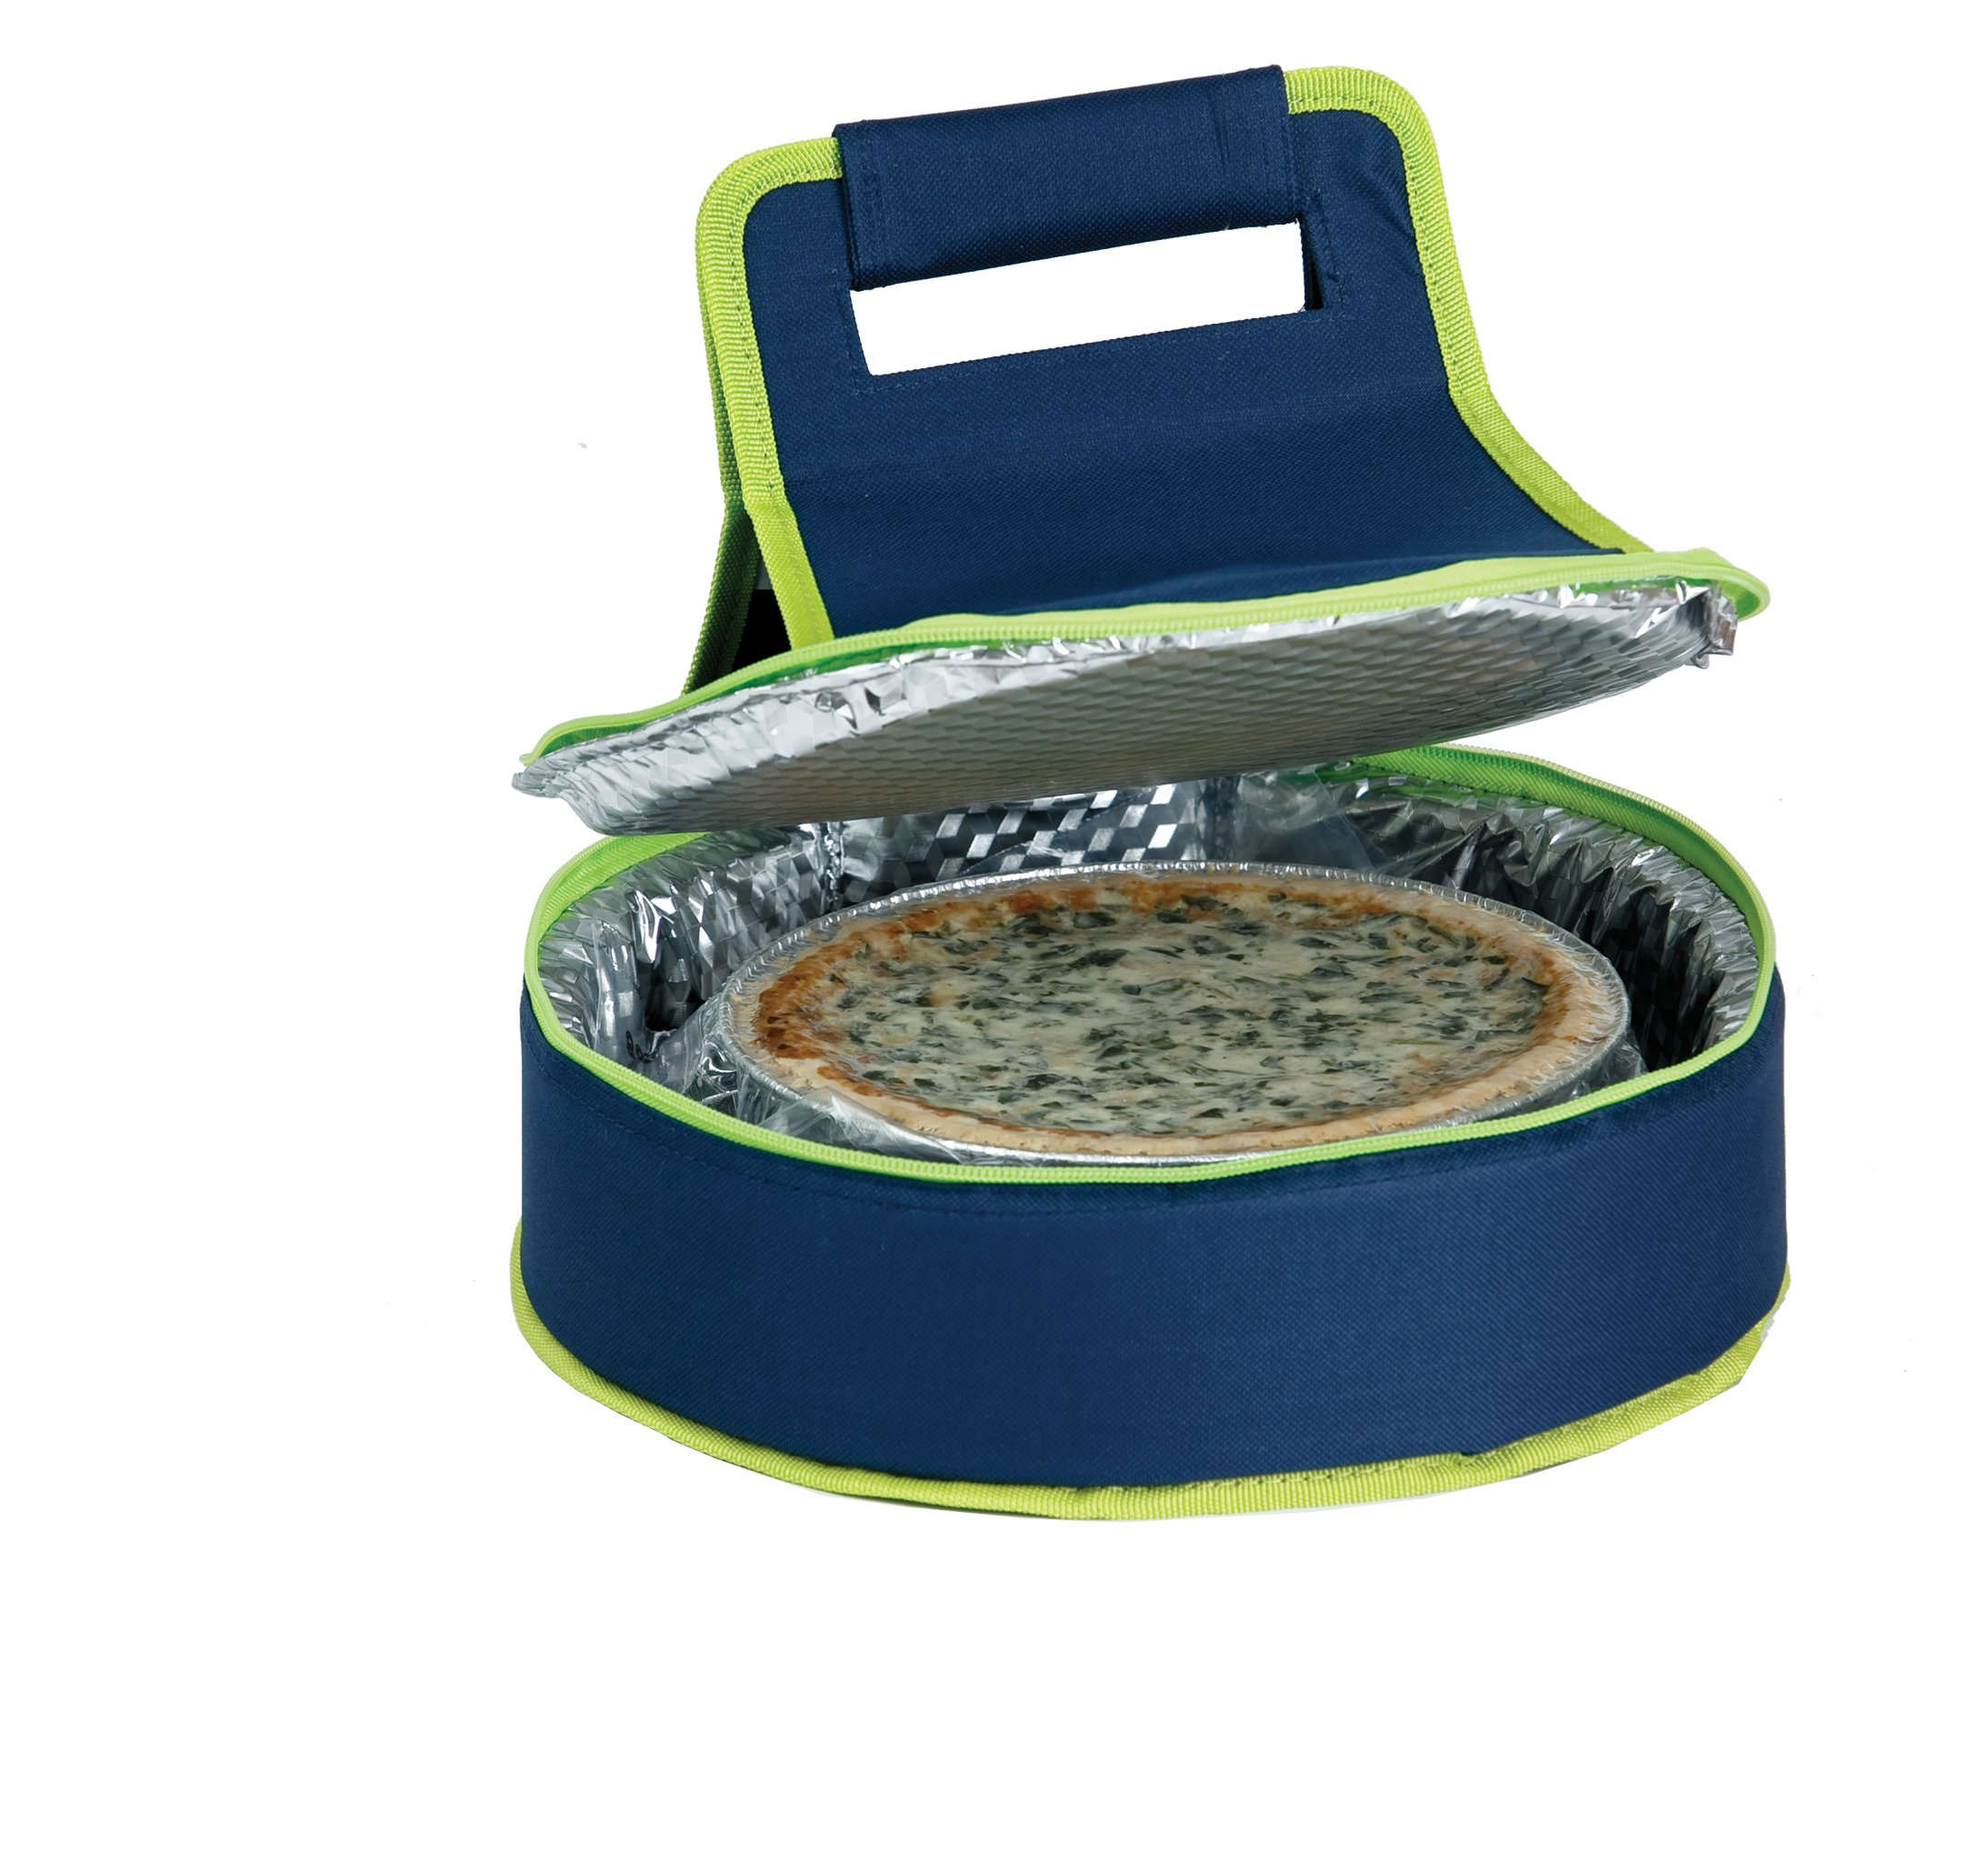 Picnic Plus Round Thermal Insulated Pie, Cake, Dessert Pot Luck Carrier Holds Up To A 12''D Dish